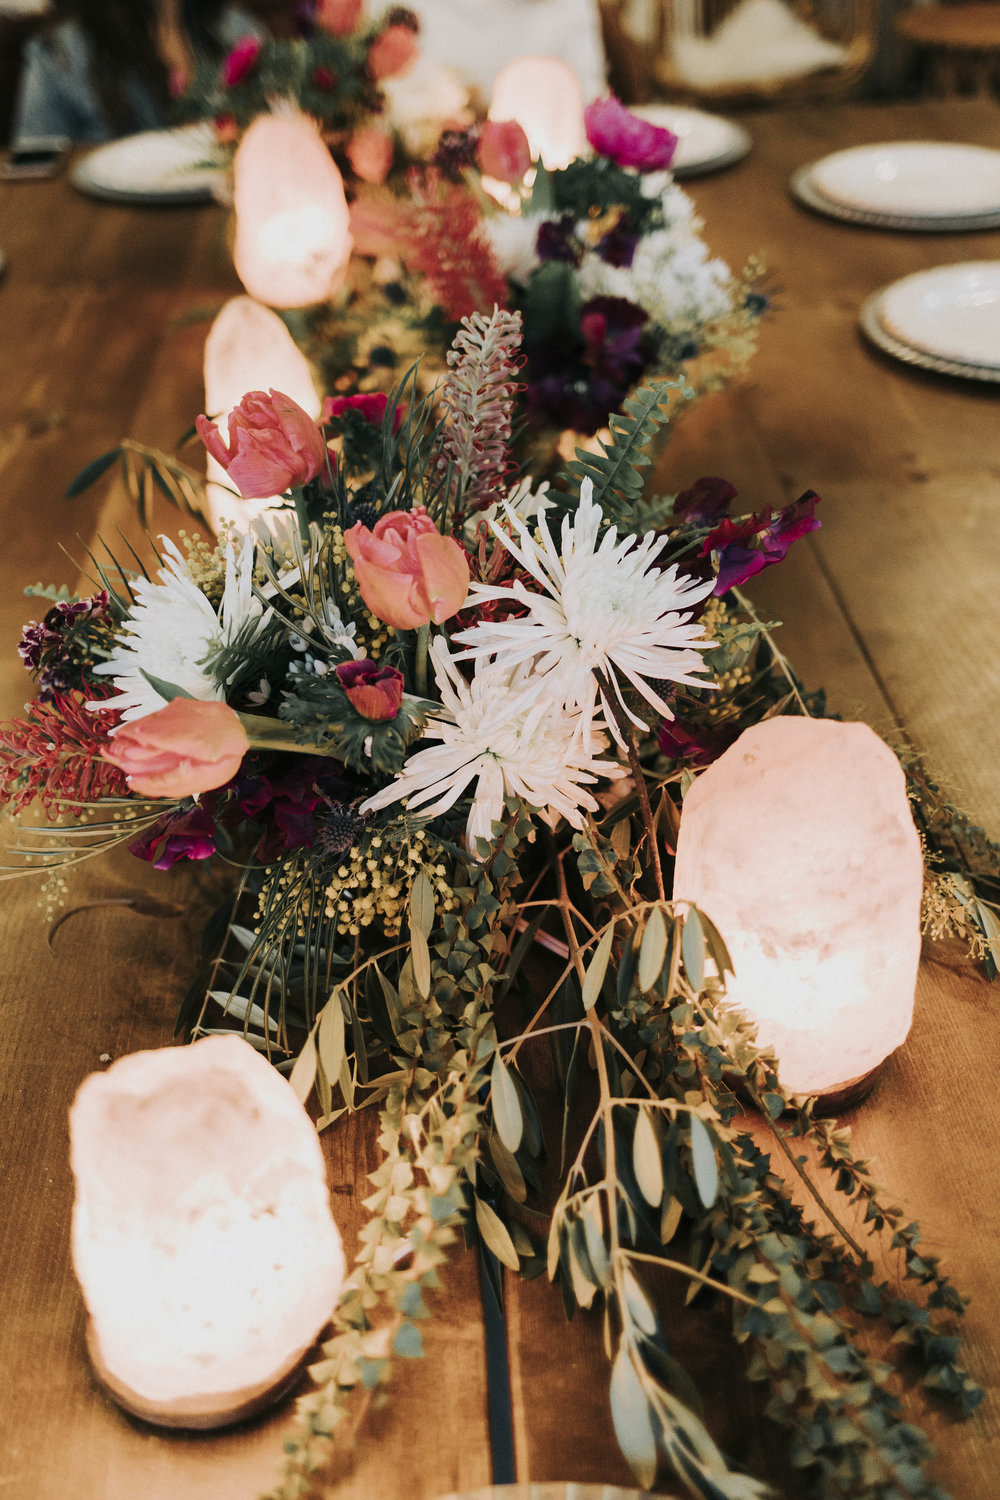 A Company Party with Pizza and Hand Spun Sugar Floss - Tremaine Ranch - AZ Arizona Wedding & Event, Vintage, Furniture, Tableware, & Specialty Rentals in Phoenix, Tucson, Flagstaff, Sedona, Tempe, Chandler, Mesa, Gilbert, Prescott, Payson 522.jpg